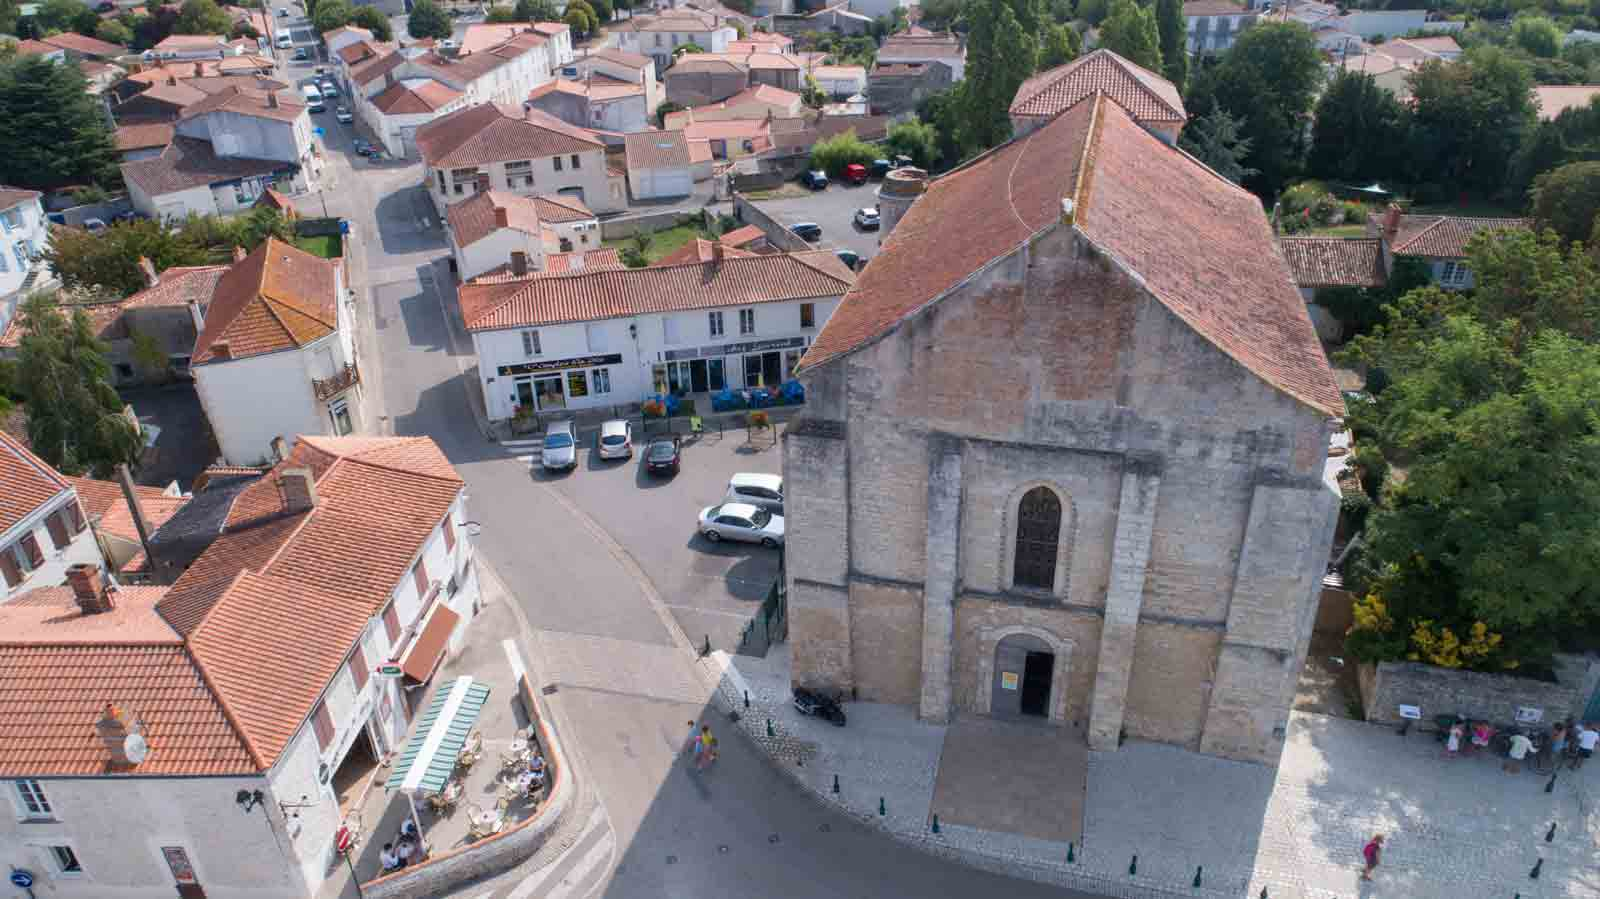 Eglise d'Angles vu du ciel - ©Horizon Vertical